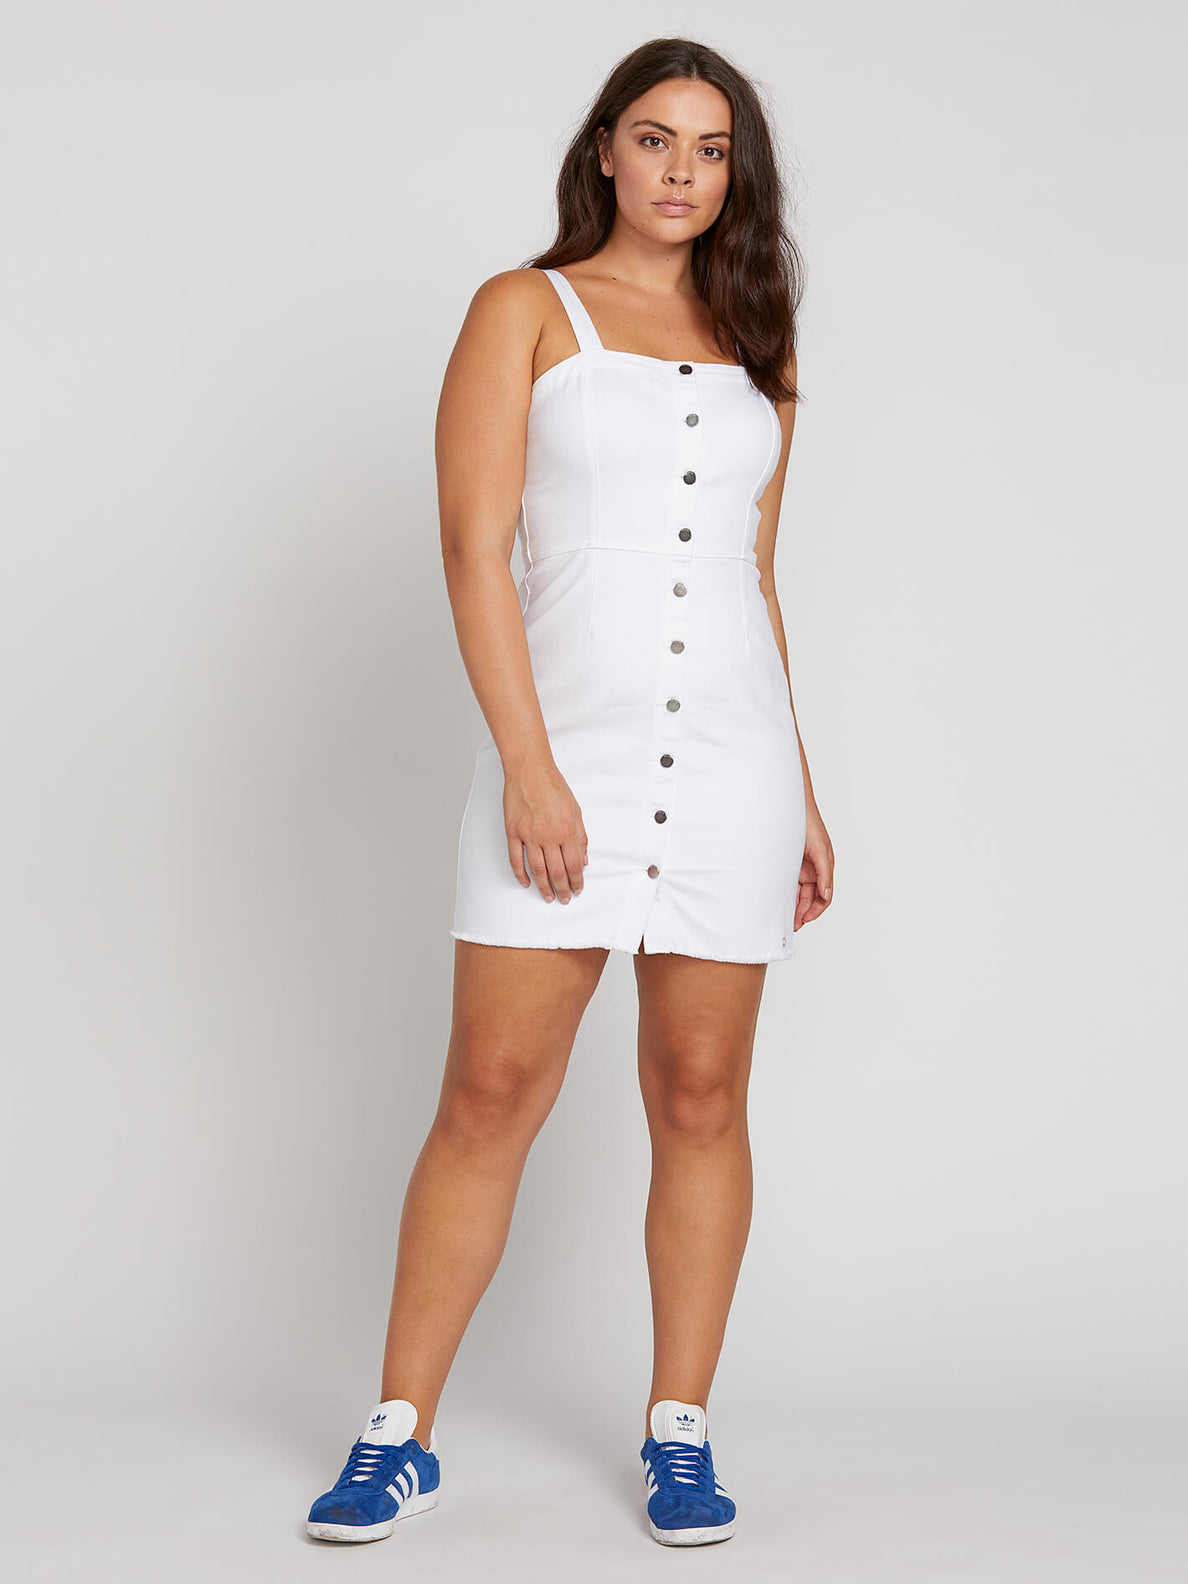 Vol Stone Dress In Paint White, Front Extended Size View